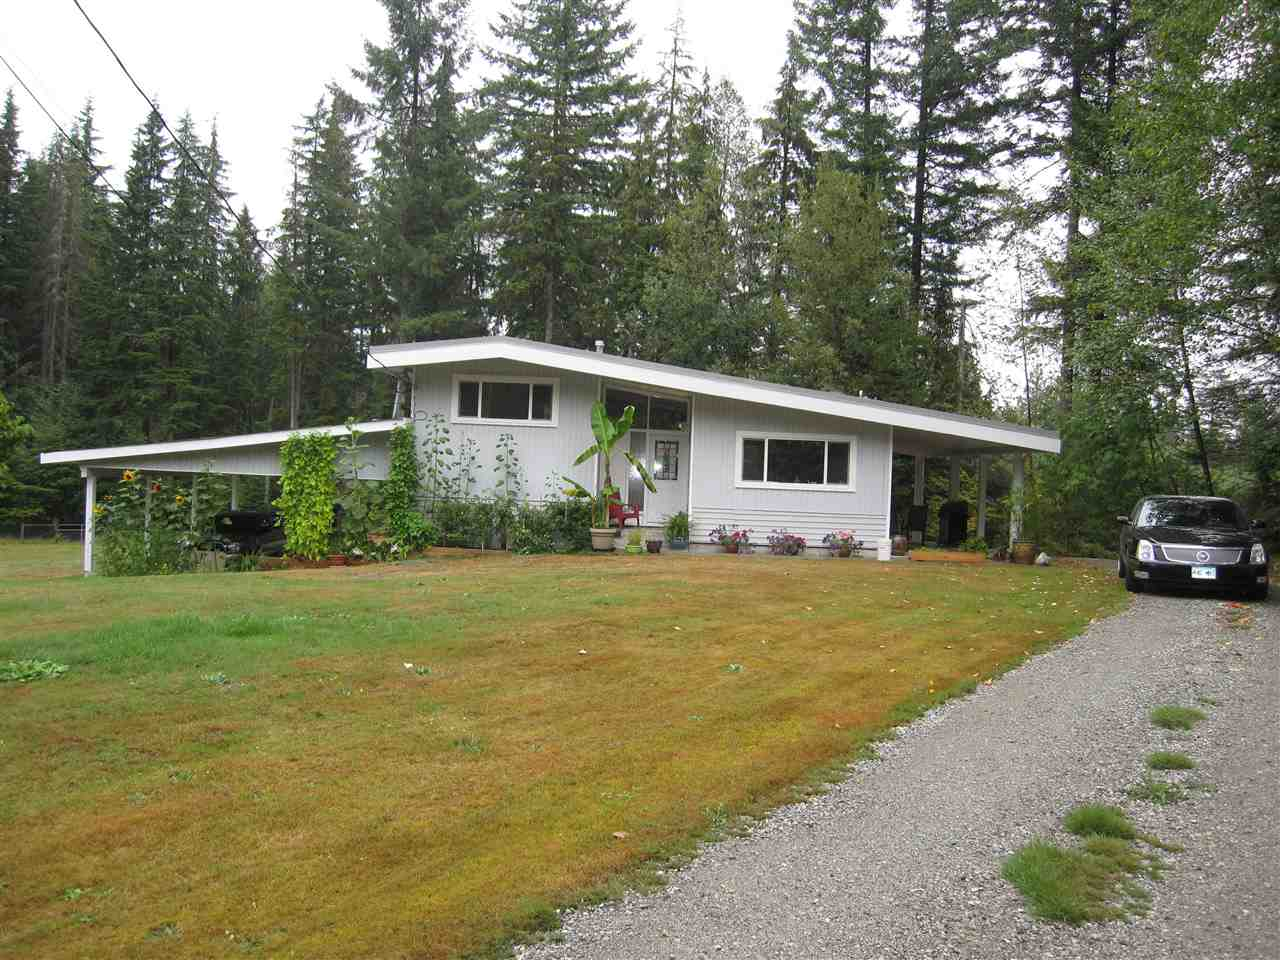 Private 2.41 acres (.976 HA) on the Maple Ridge/Mission border. Very tranquil setting. House has new roof, new furnace, new paint (inside & out), new appliances. Property has a drilled well, permitted pressurized septic system and a fully fenced yard. This could be your own little piece of paradise.